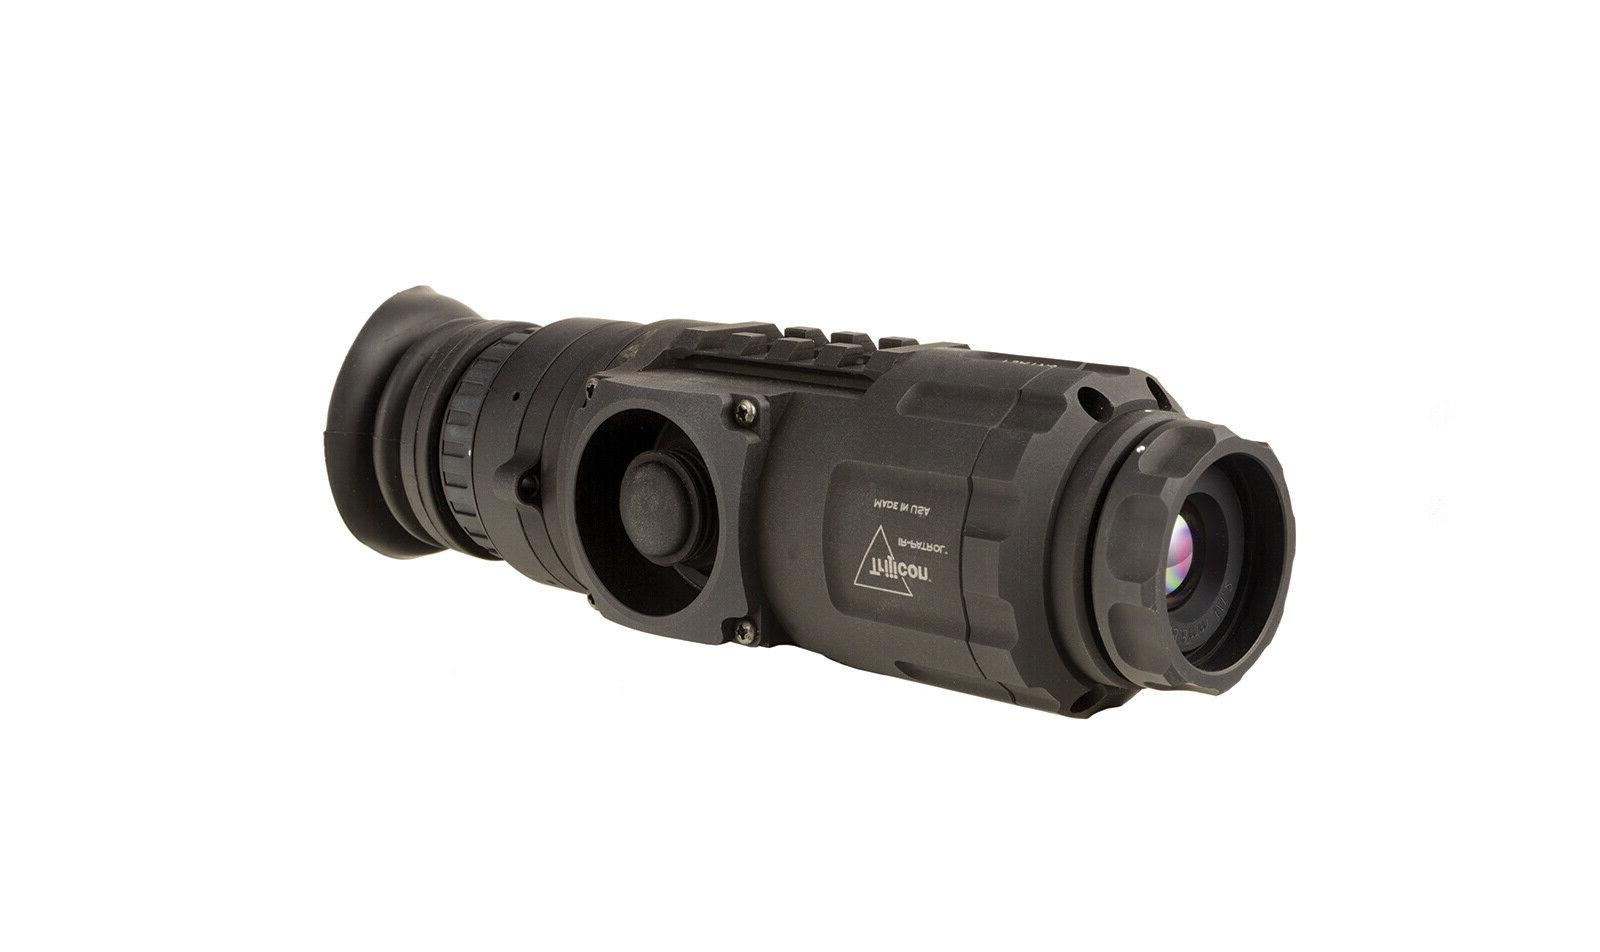 patrol le100 series thermal monocular download cable